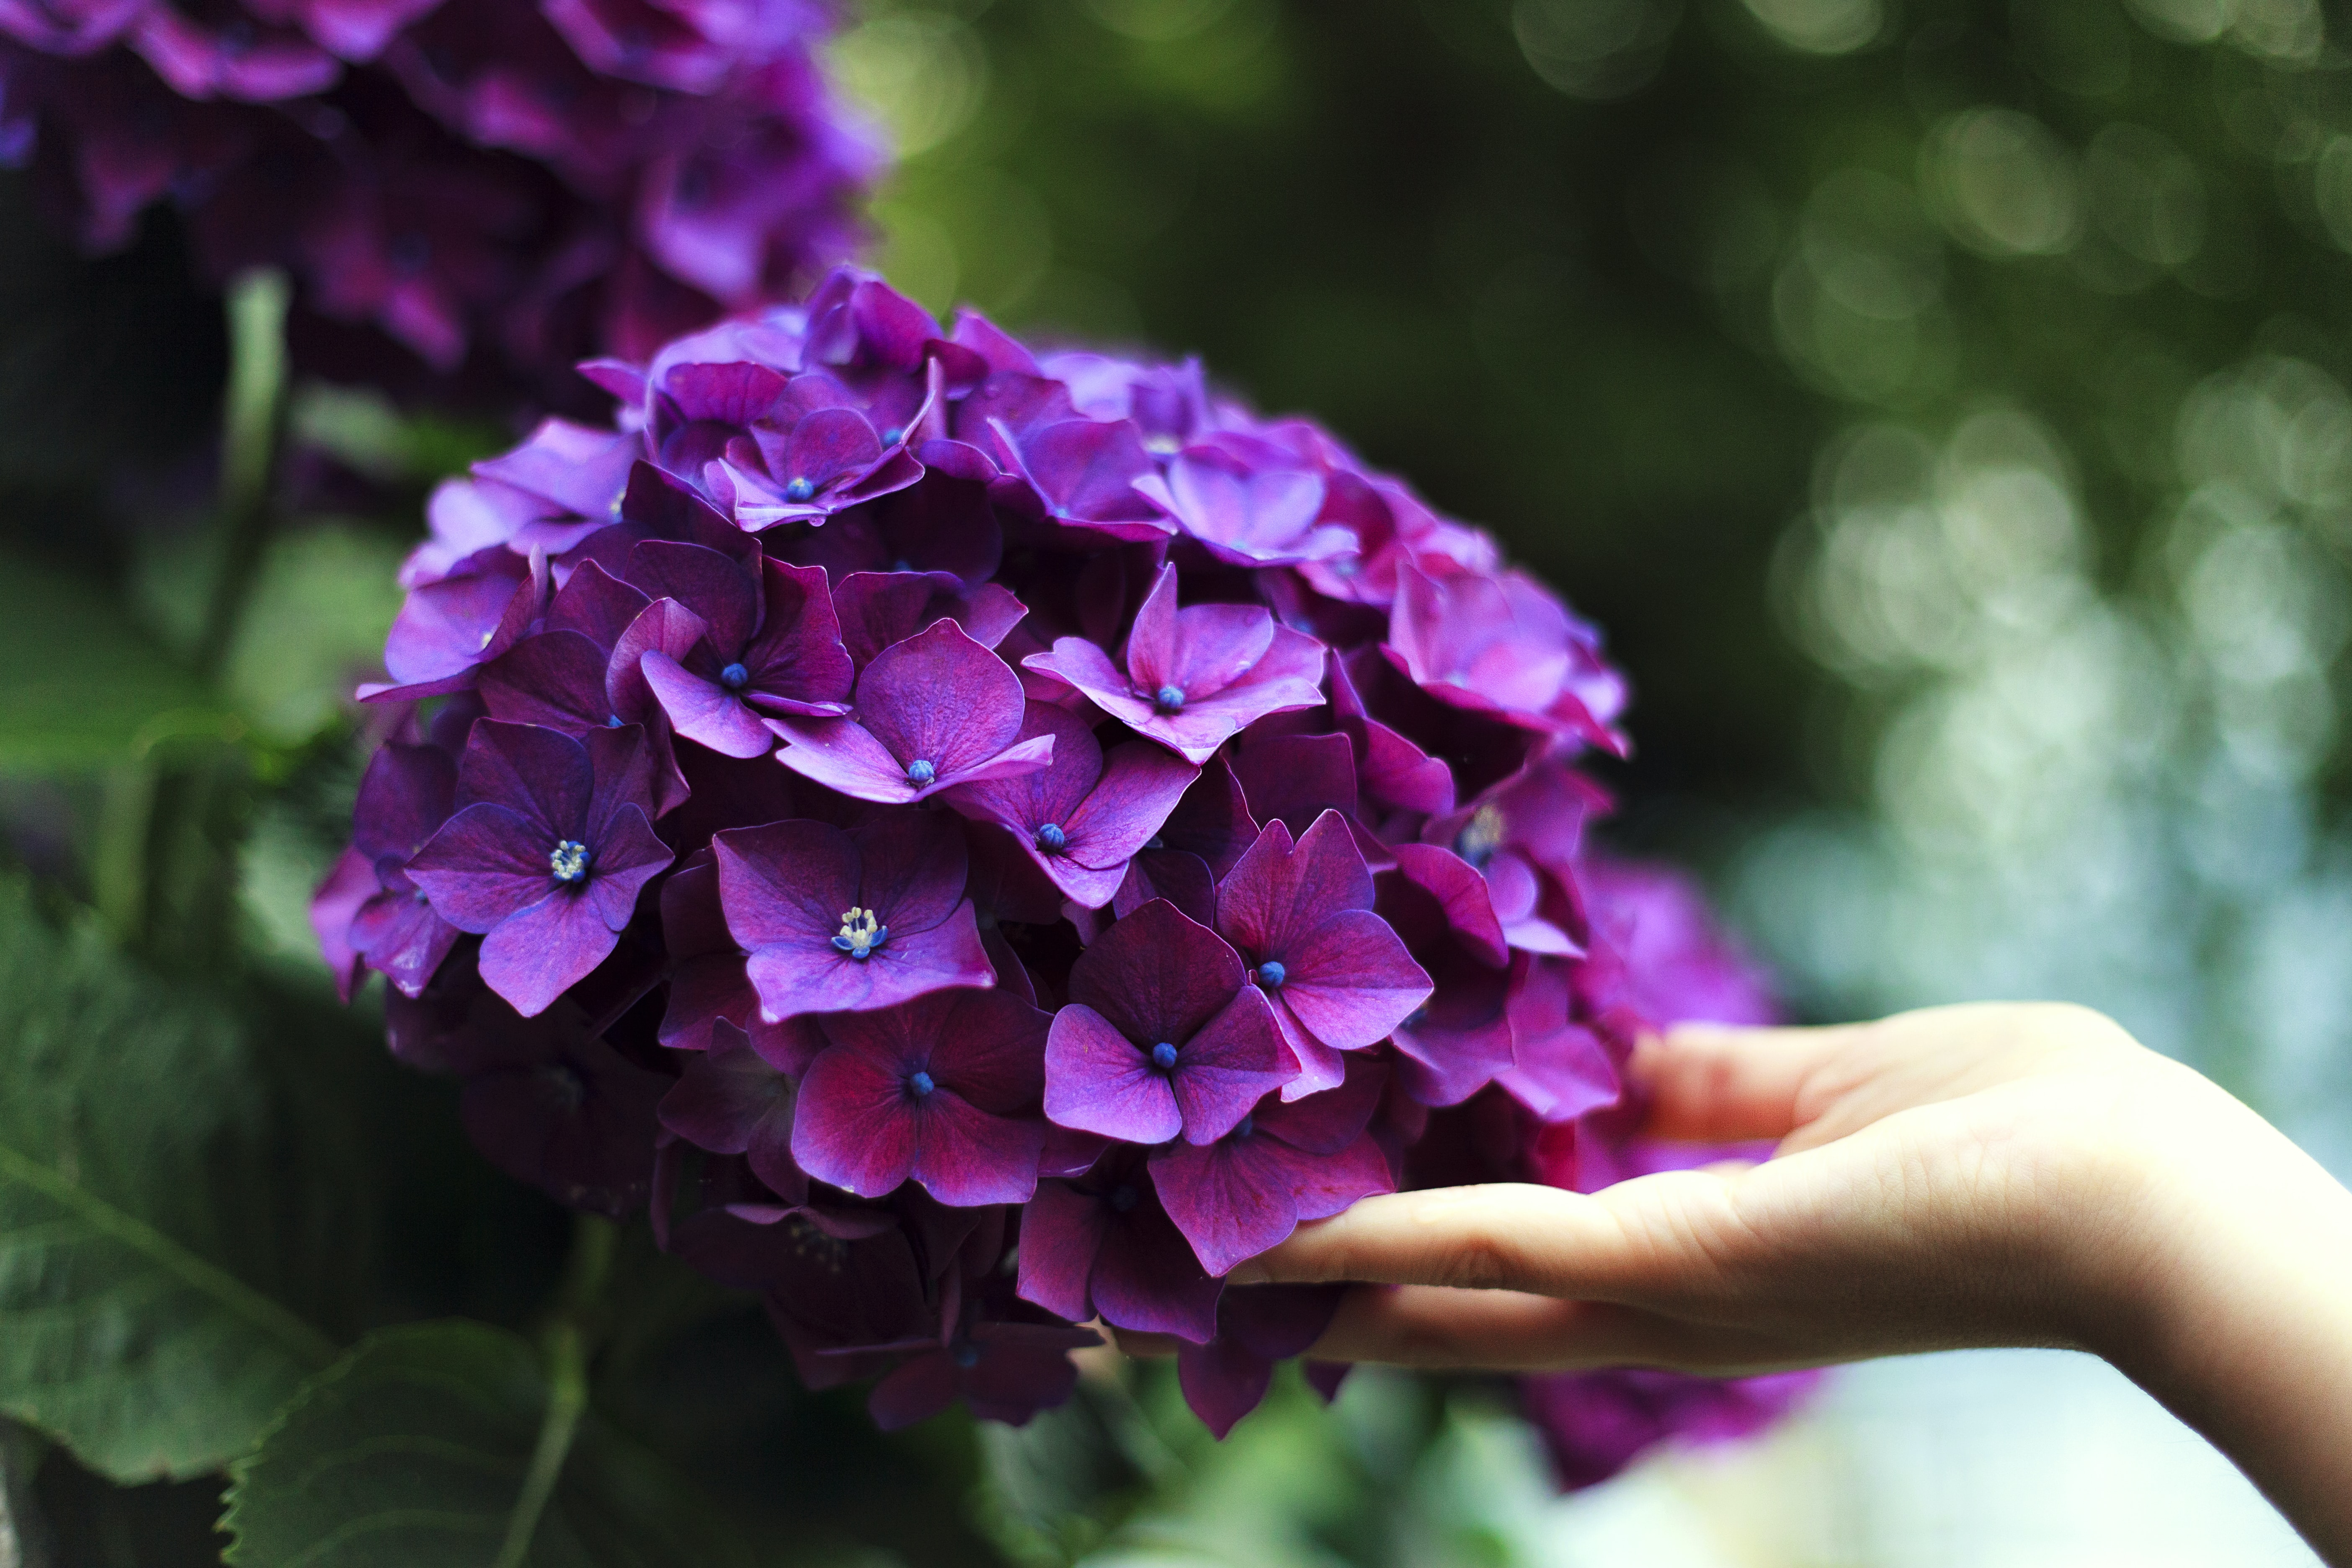 A person's hand touching a cluster of purple hydrangea flowers